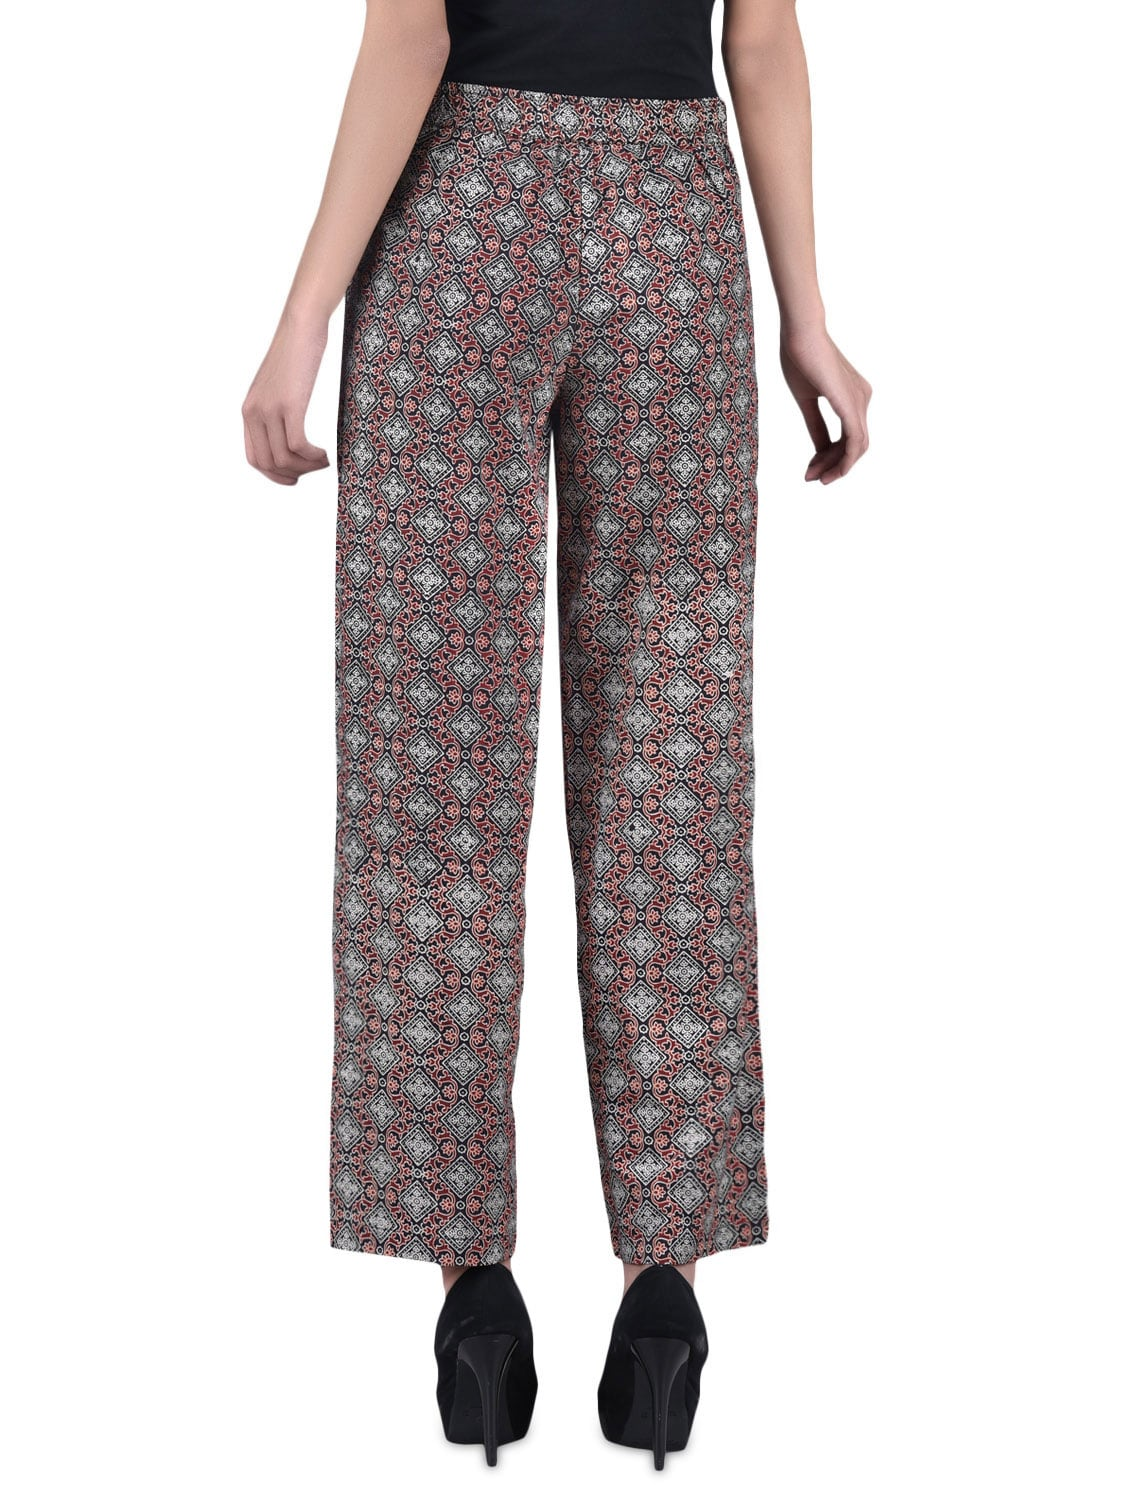 2c07aec4914 Buy Brown Printed Cotton Pants by Lyla - Online shopping for Trousers in  India